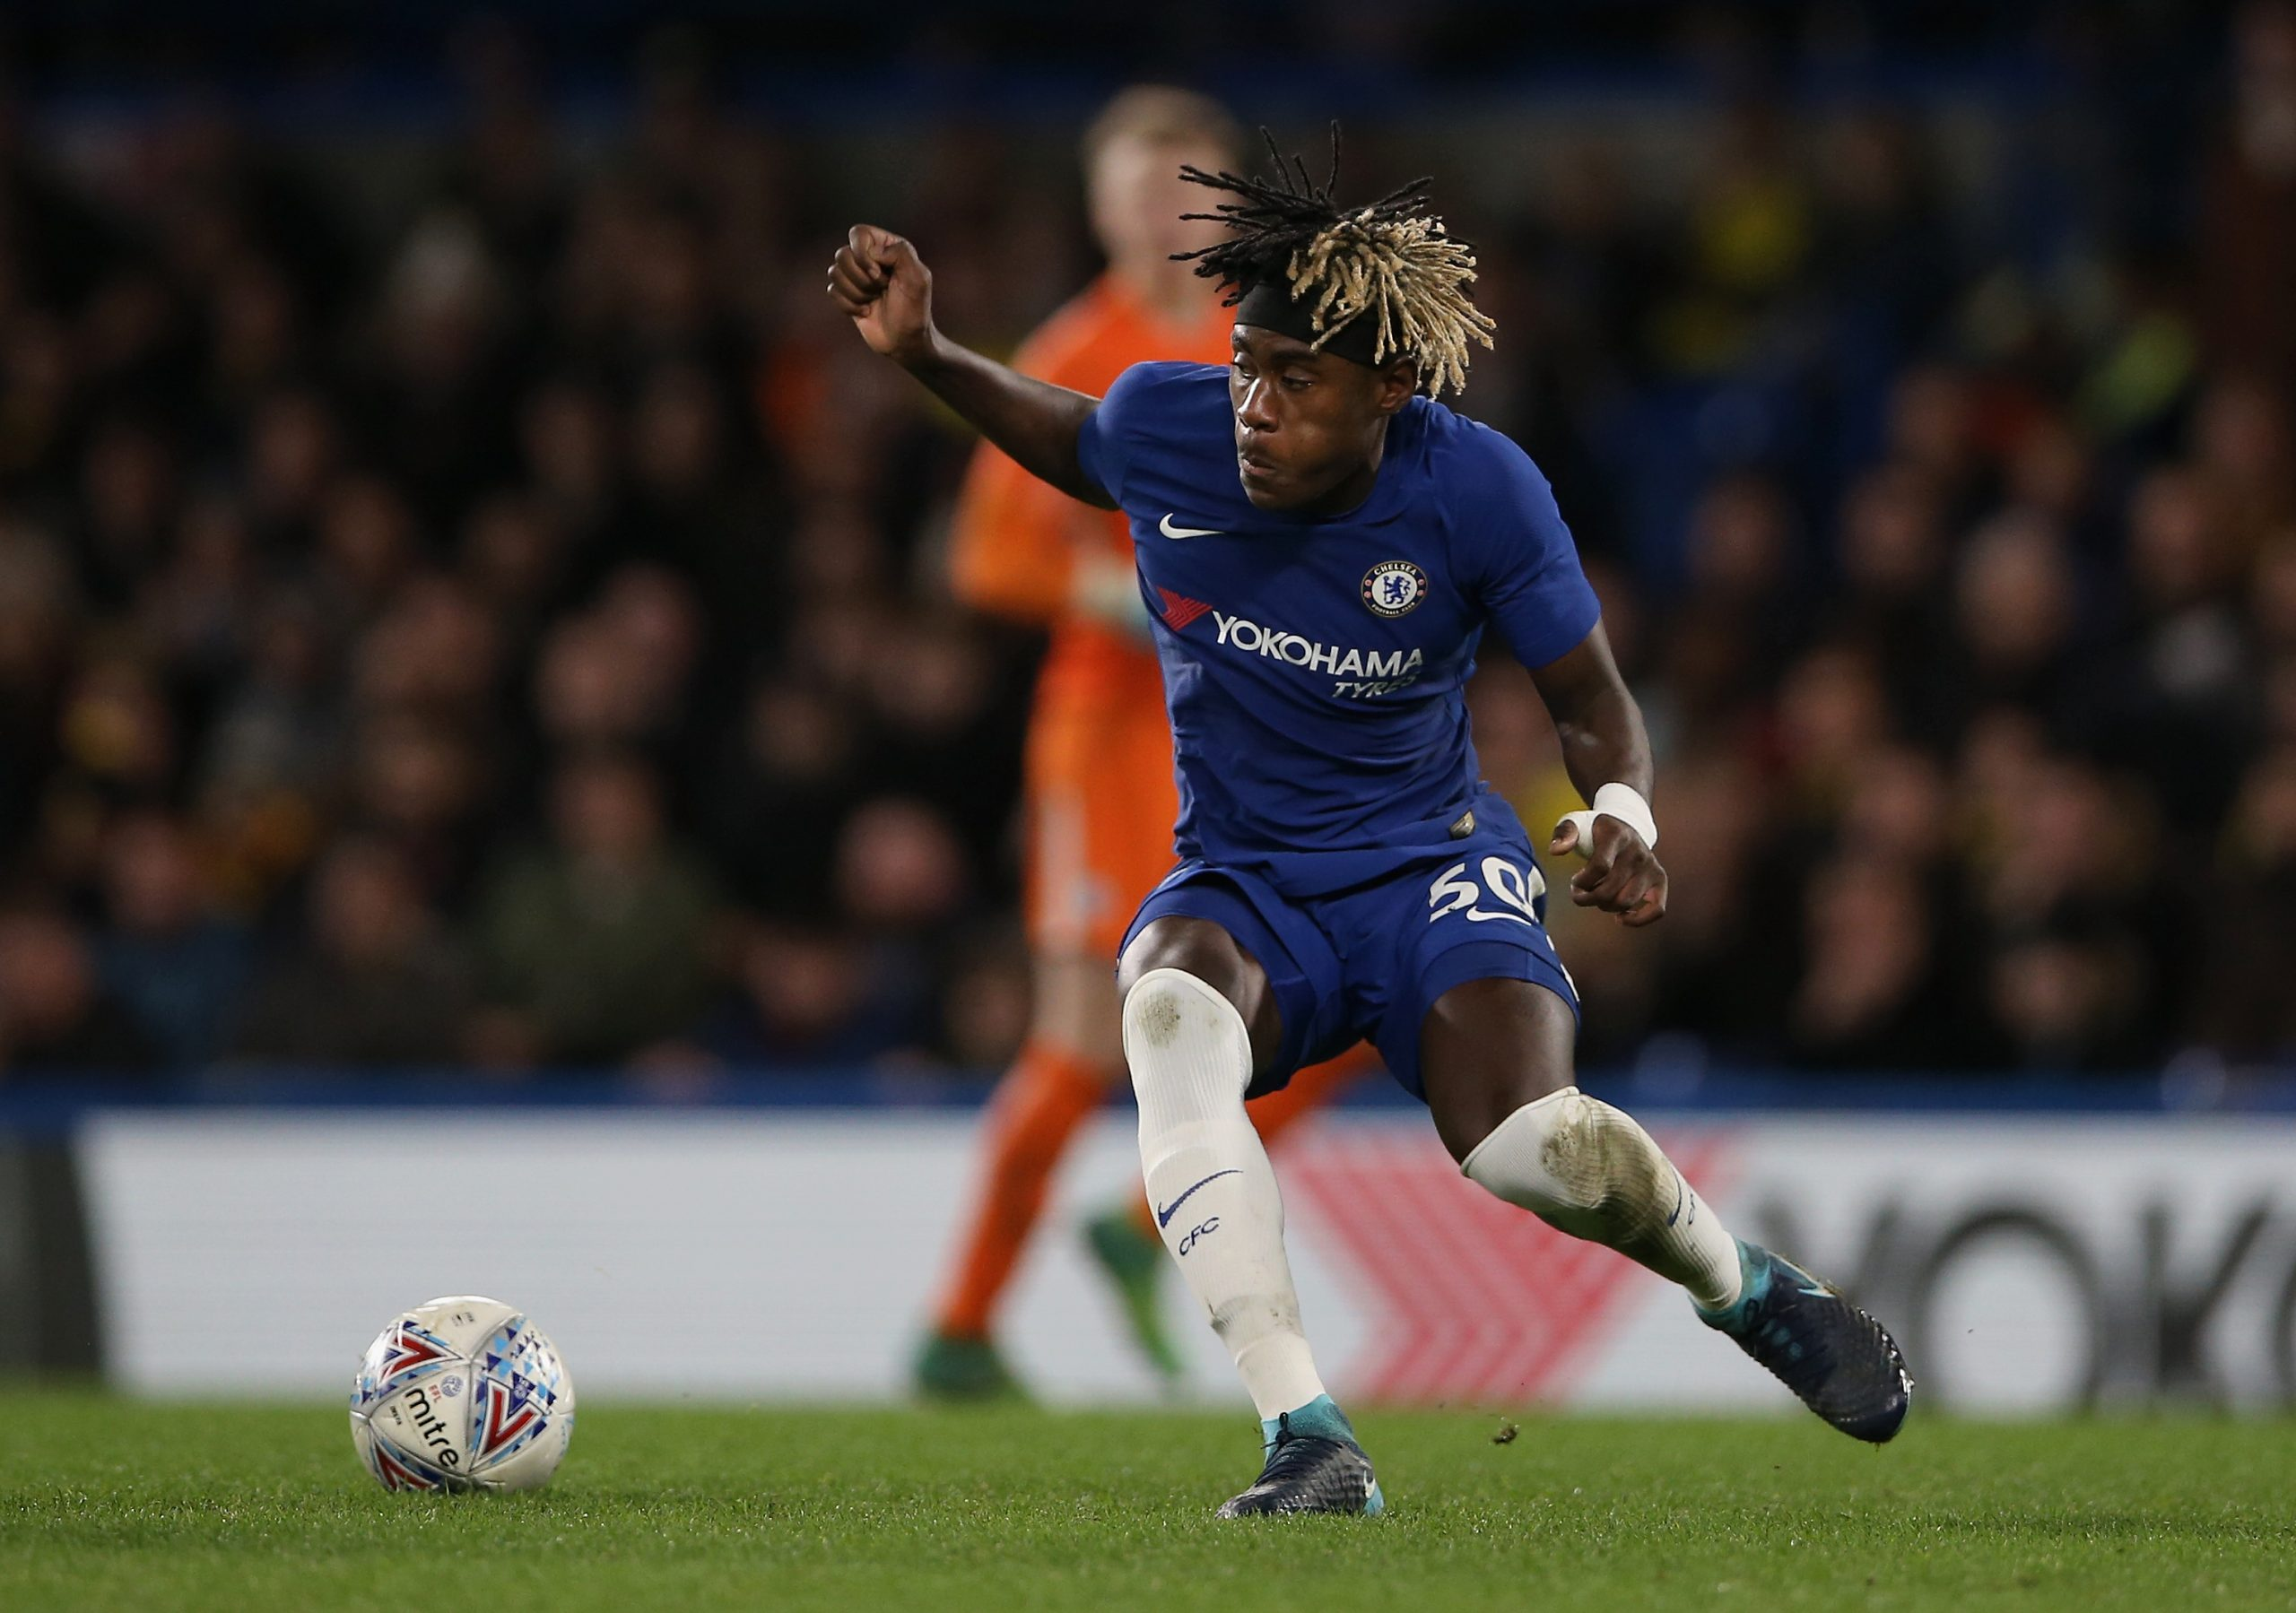 Trevoh Chalobah to head out on loan from Chelsea this summer.